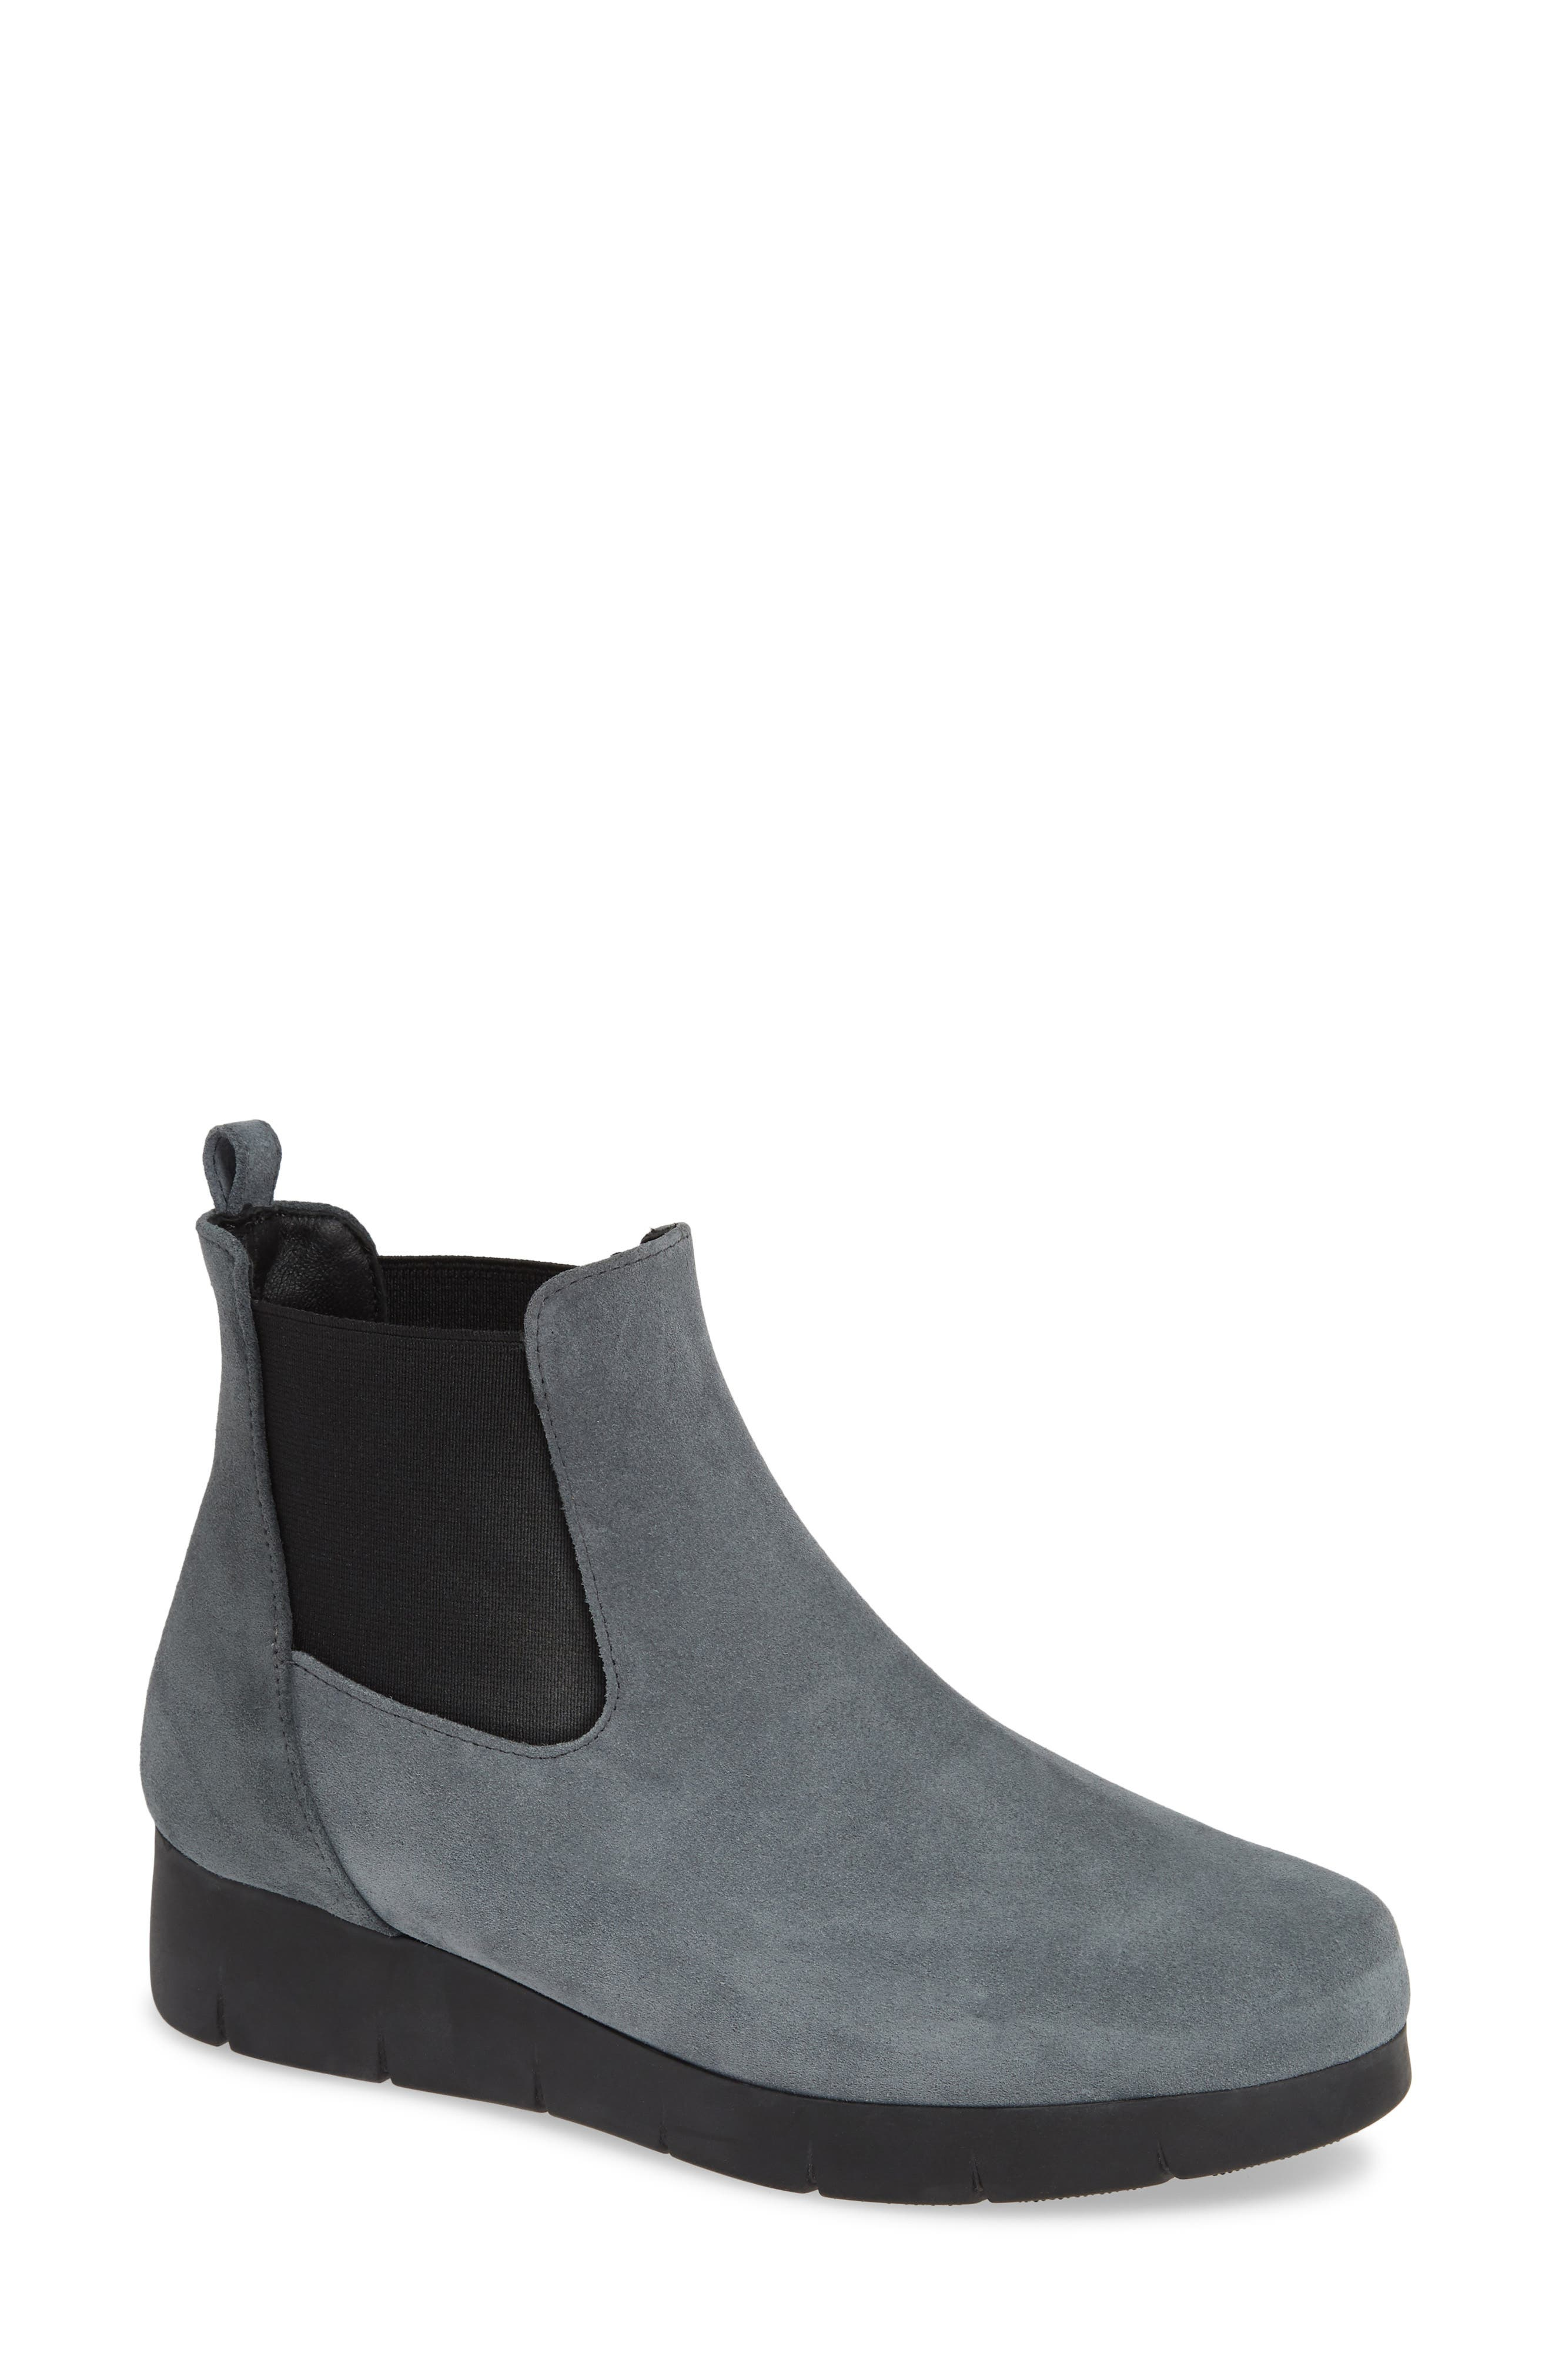 Aimee Water Resistant Chelsea Bootie,                             Main thumbnail 1, color,                             GREY SUEDE